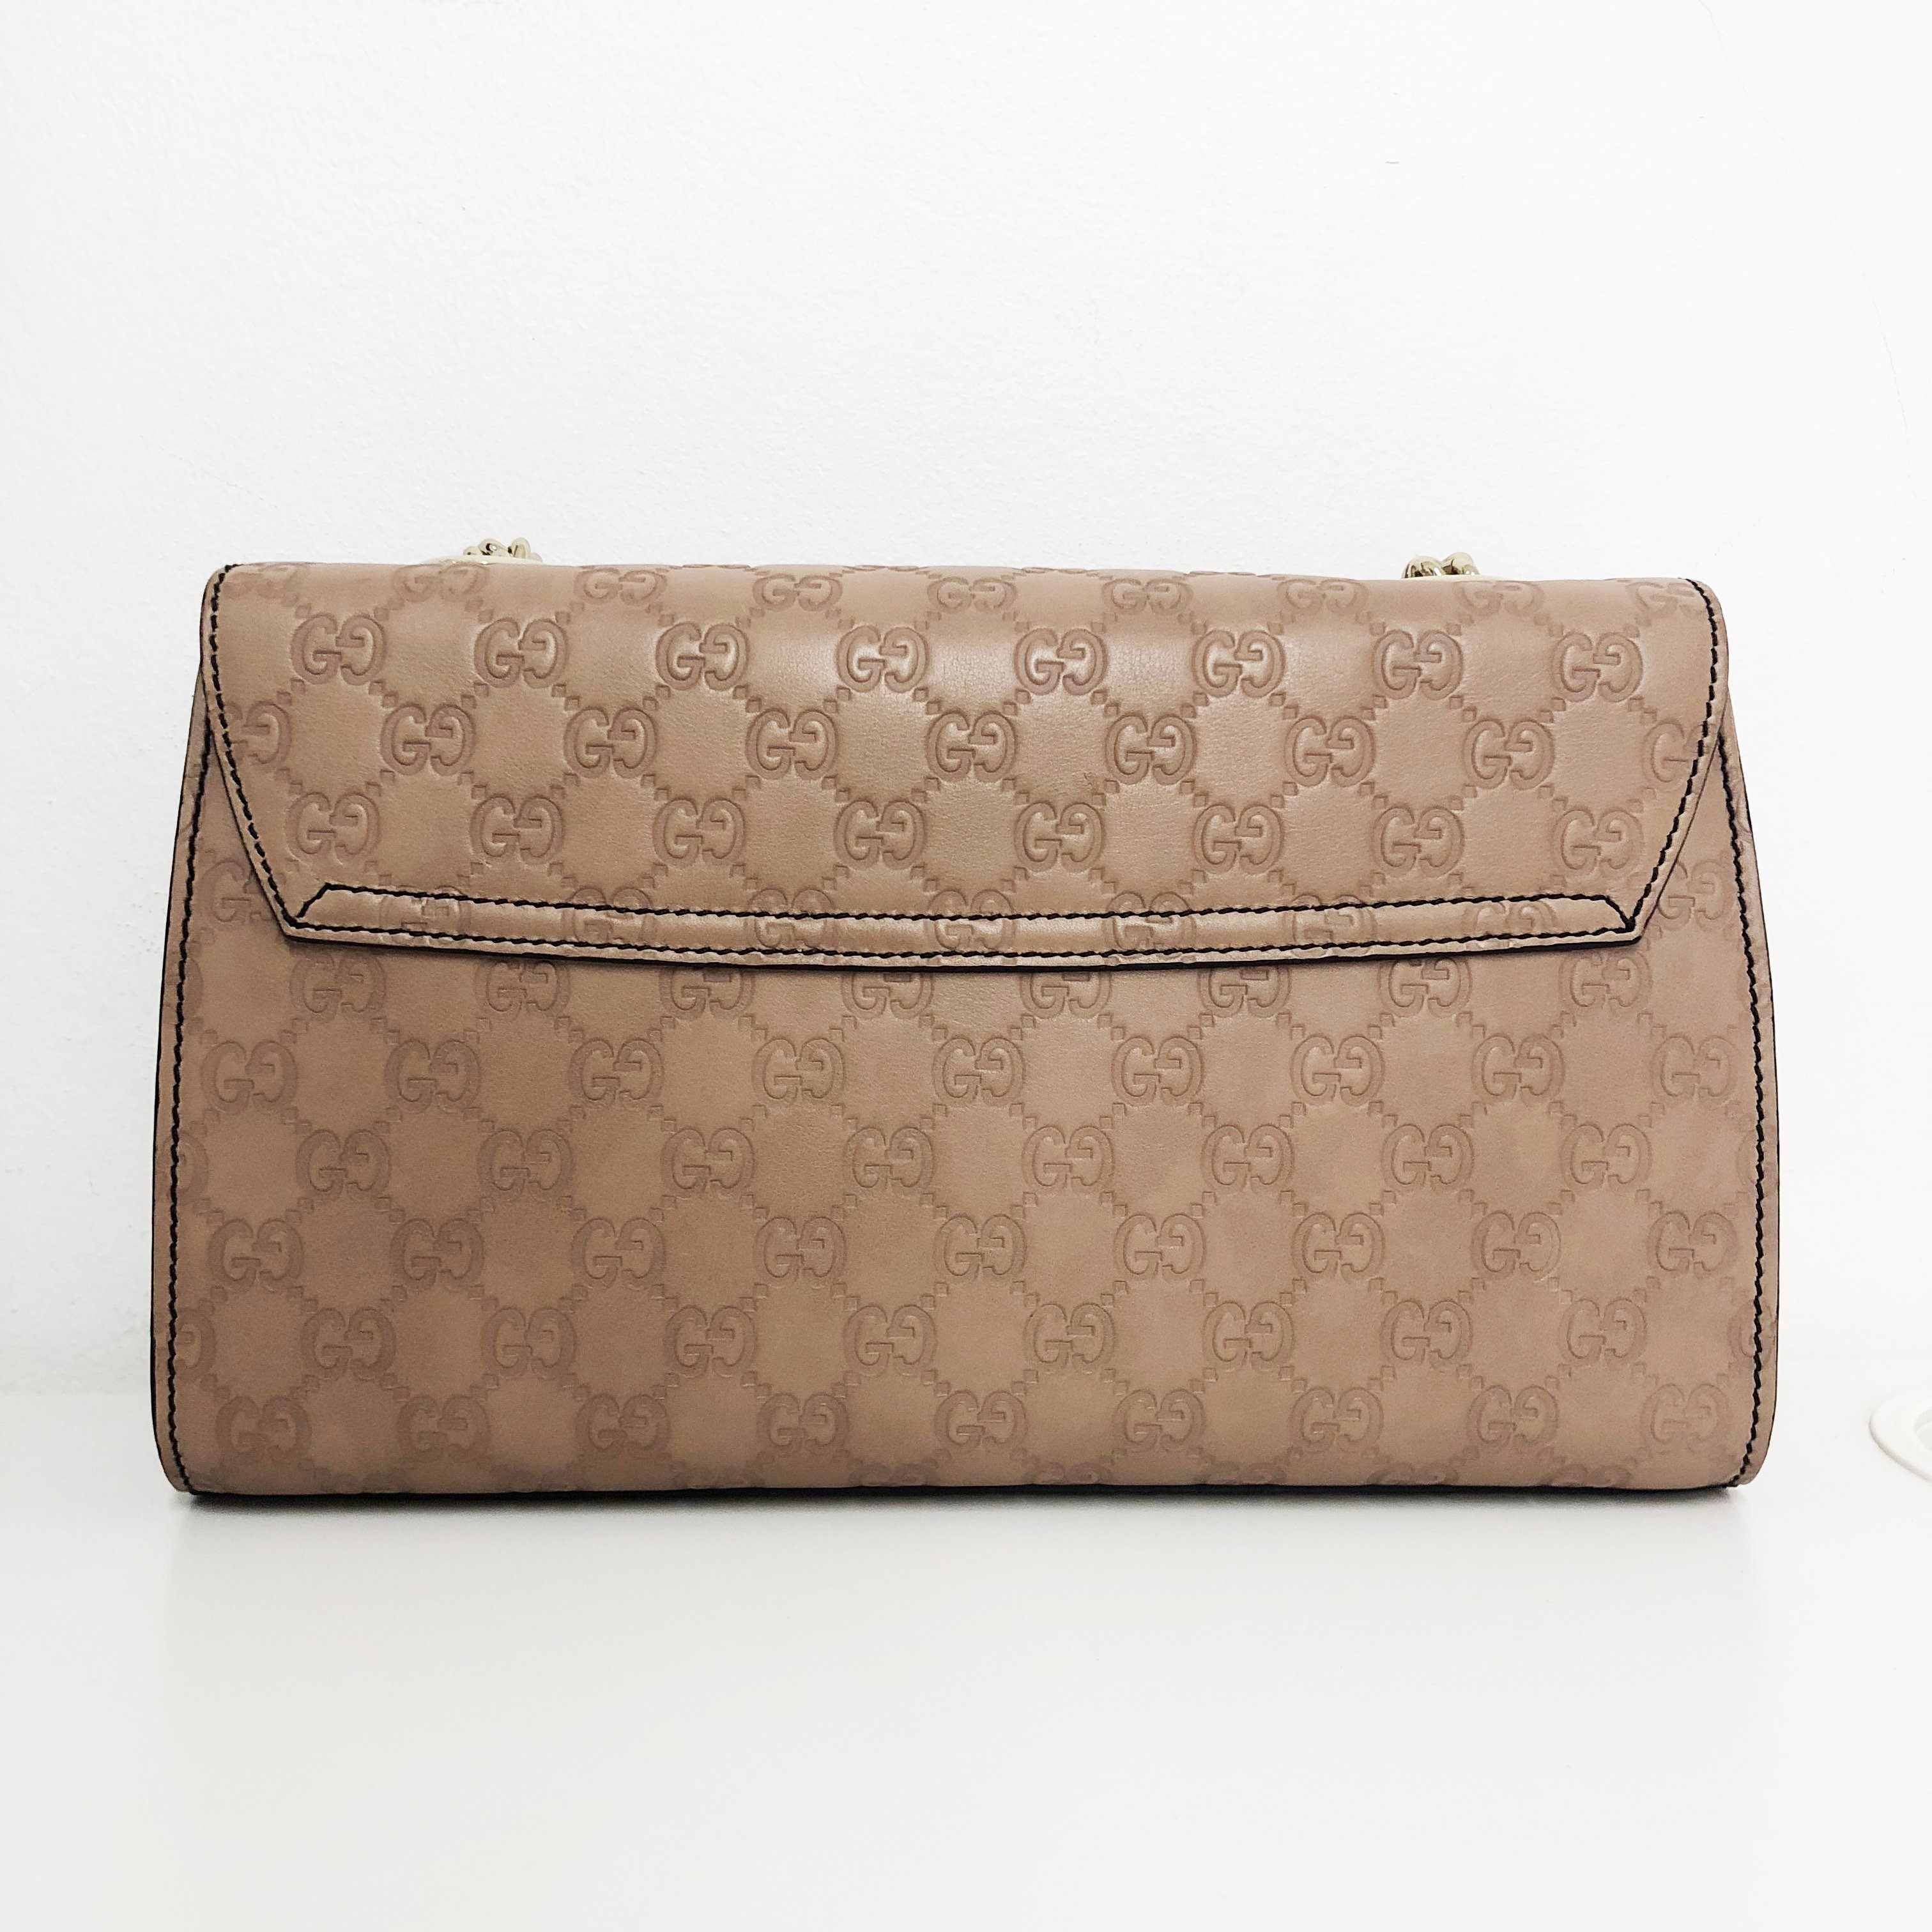 Gucci Beige Emily Shoulder Bag